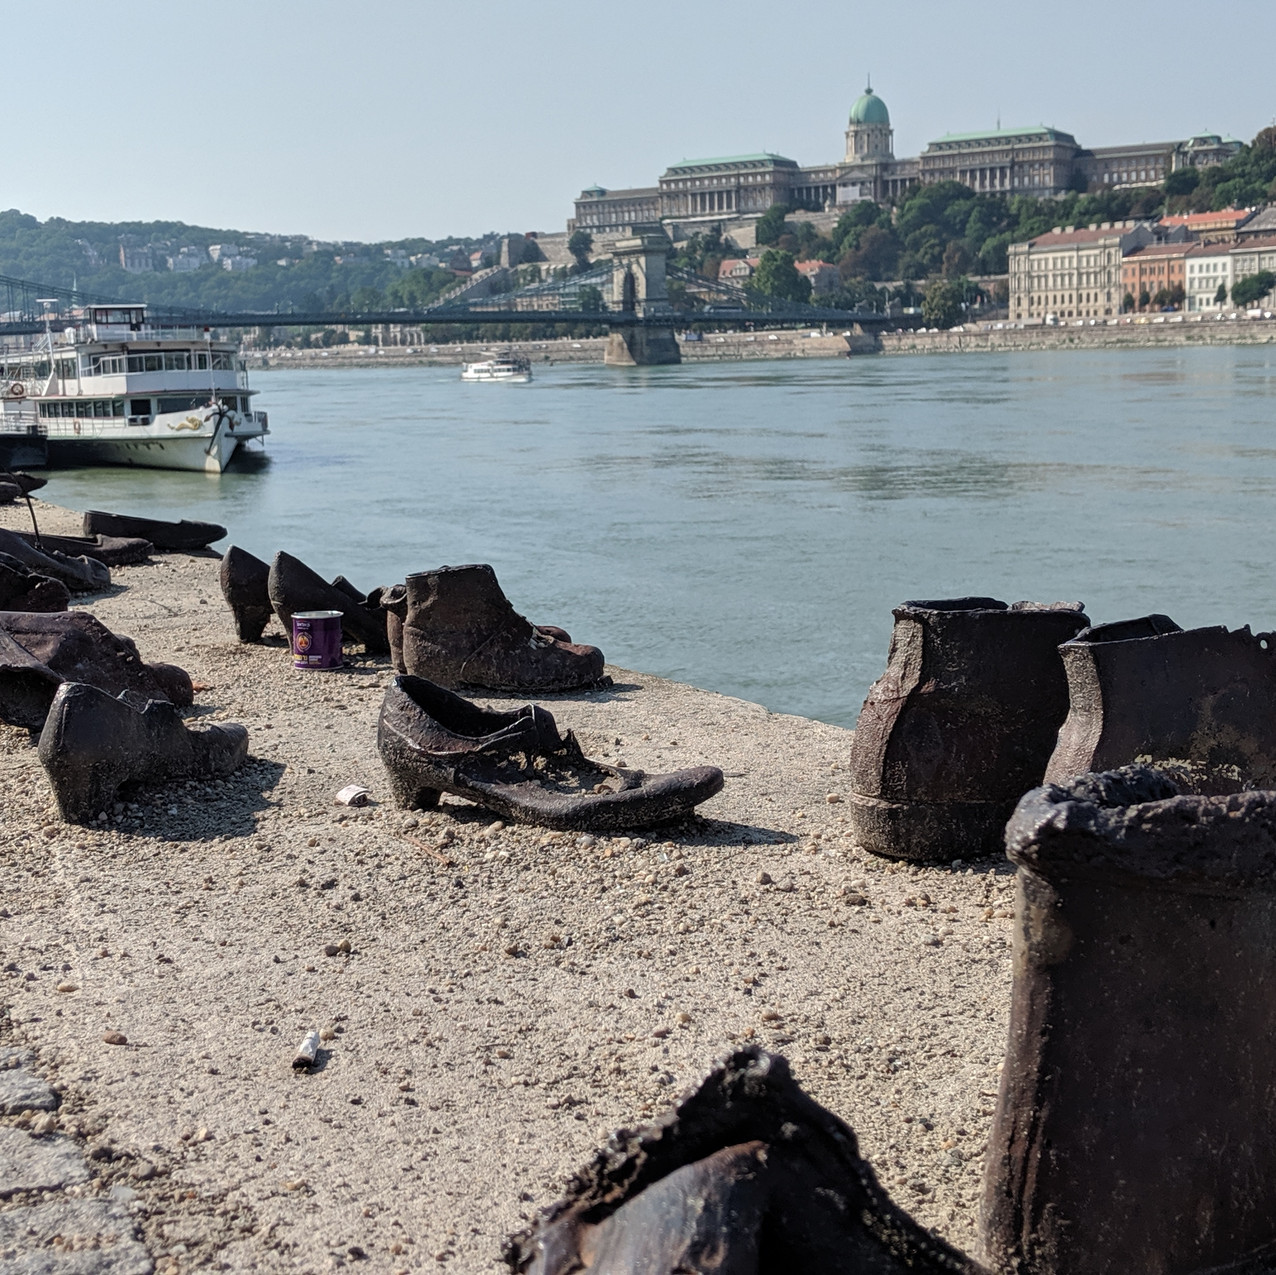 Shoes on the Danube.